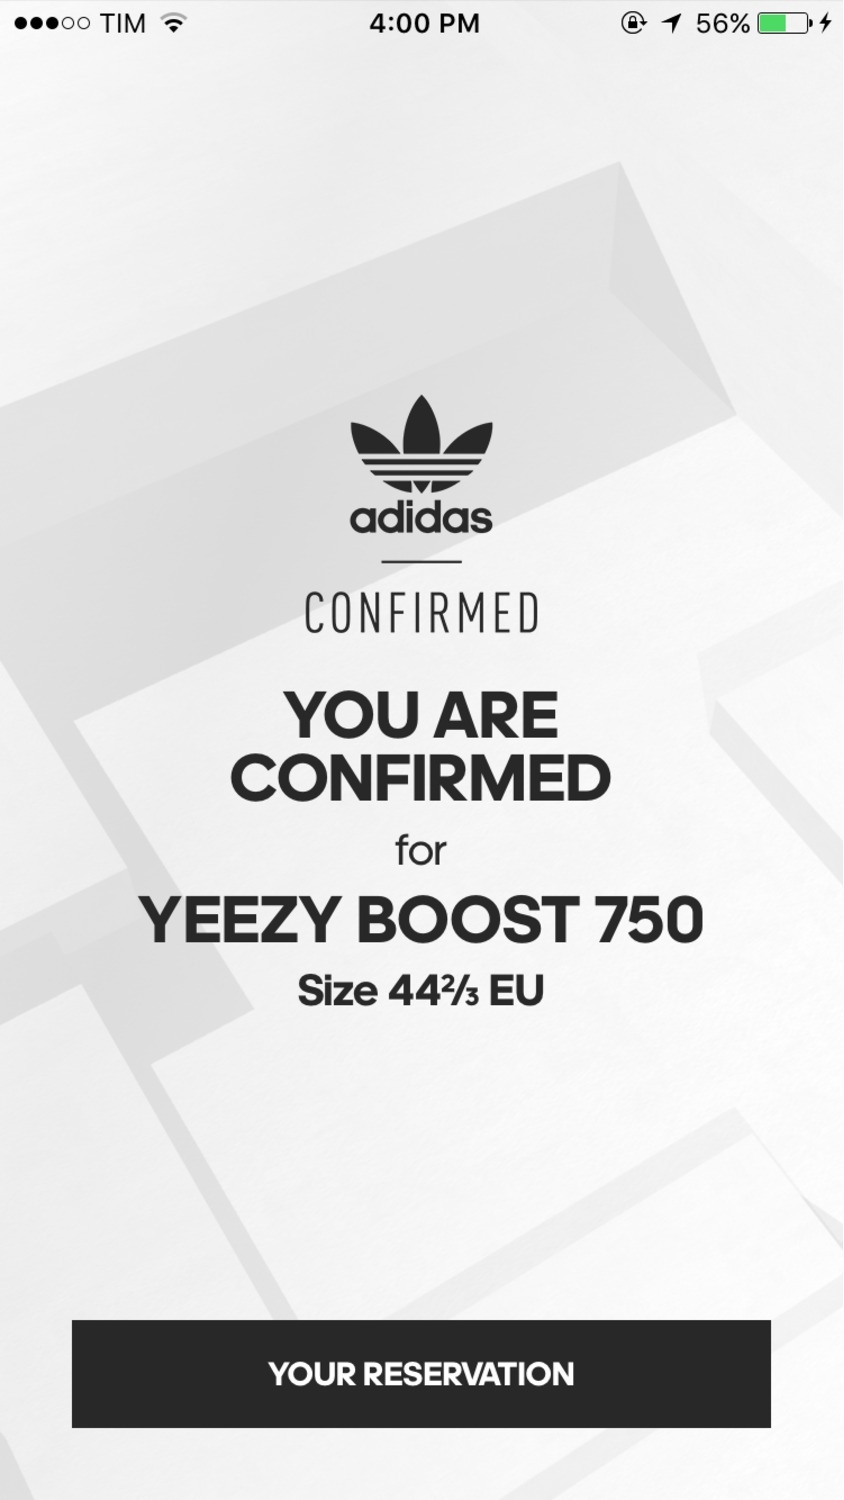 yeezy boost adidas confirmed